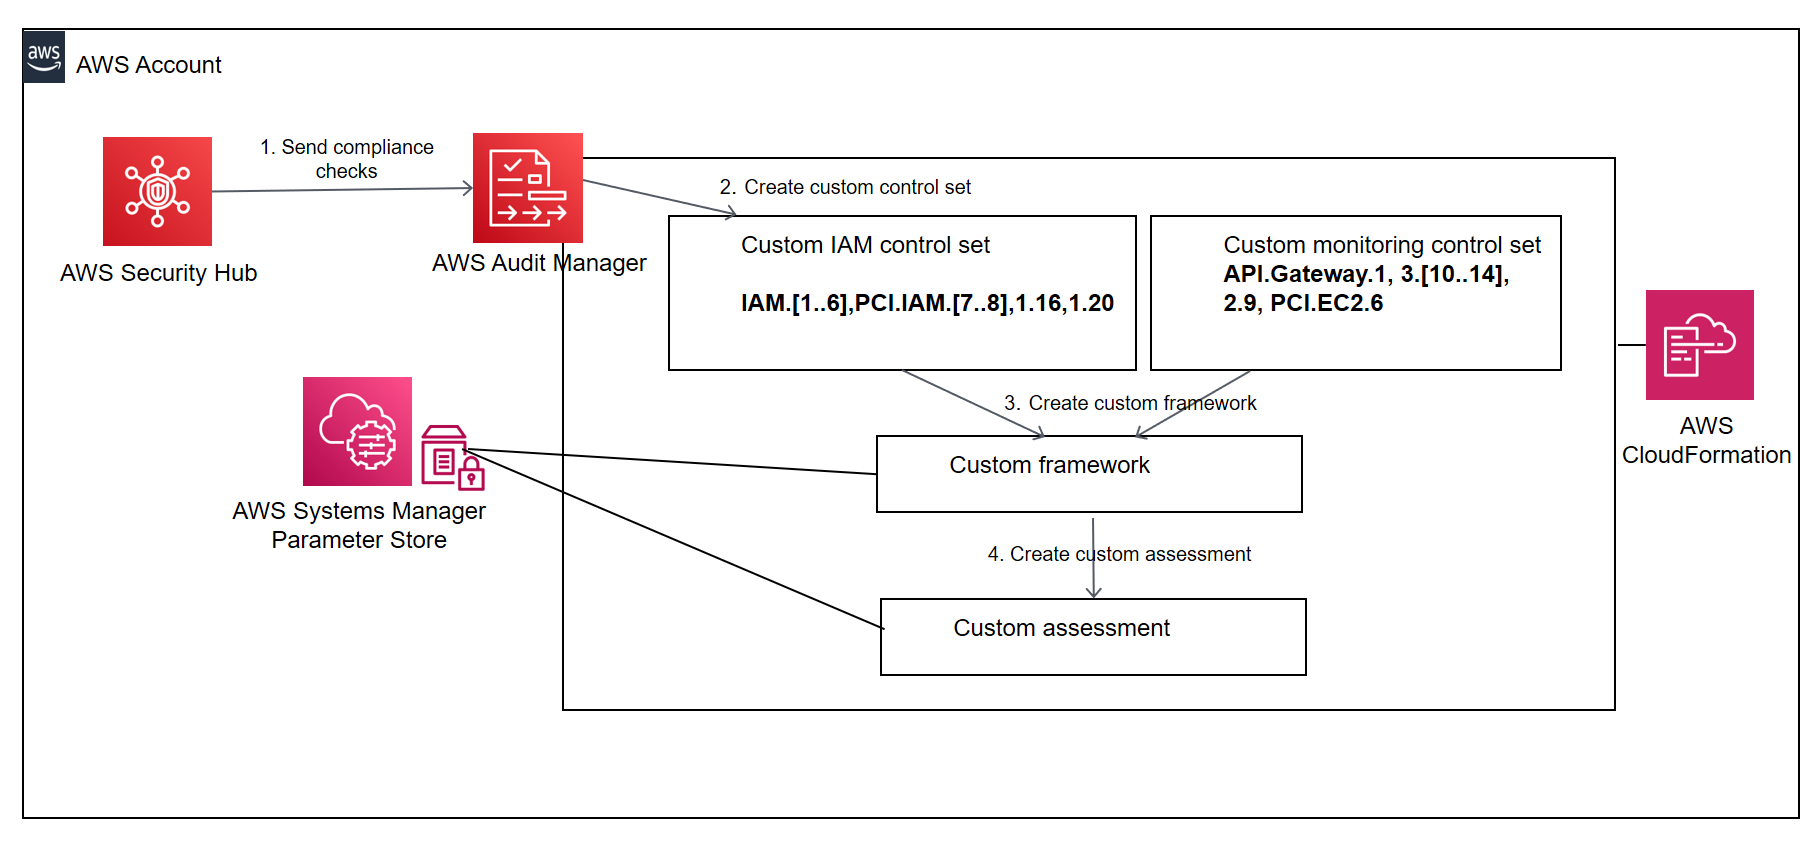 In step 1, Security Hub sends compliance checks to AWS Audit Manager. enecIccbibeeuihnlvbgjkbfil iljditnddjsvtunheertktep 2, the solution creates custom control sets. In step 3, the solution creates a custom framework. In step 4, the solution provisions a custom assessment from the framework